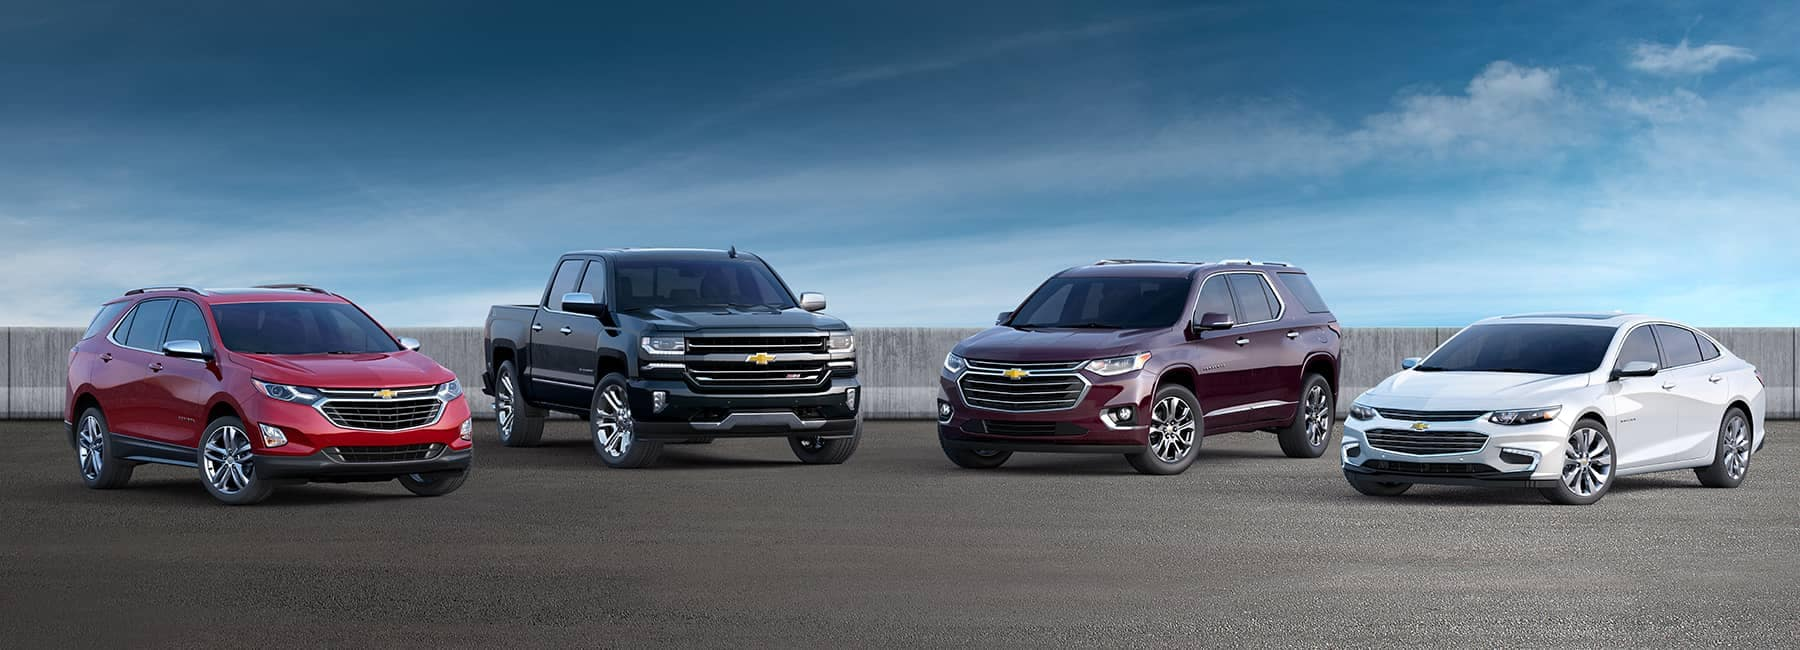 2018 Model Lineup Chevy Cars and Trucks